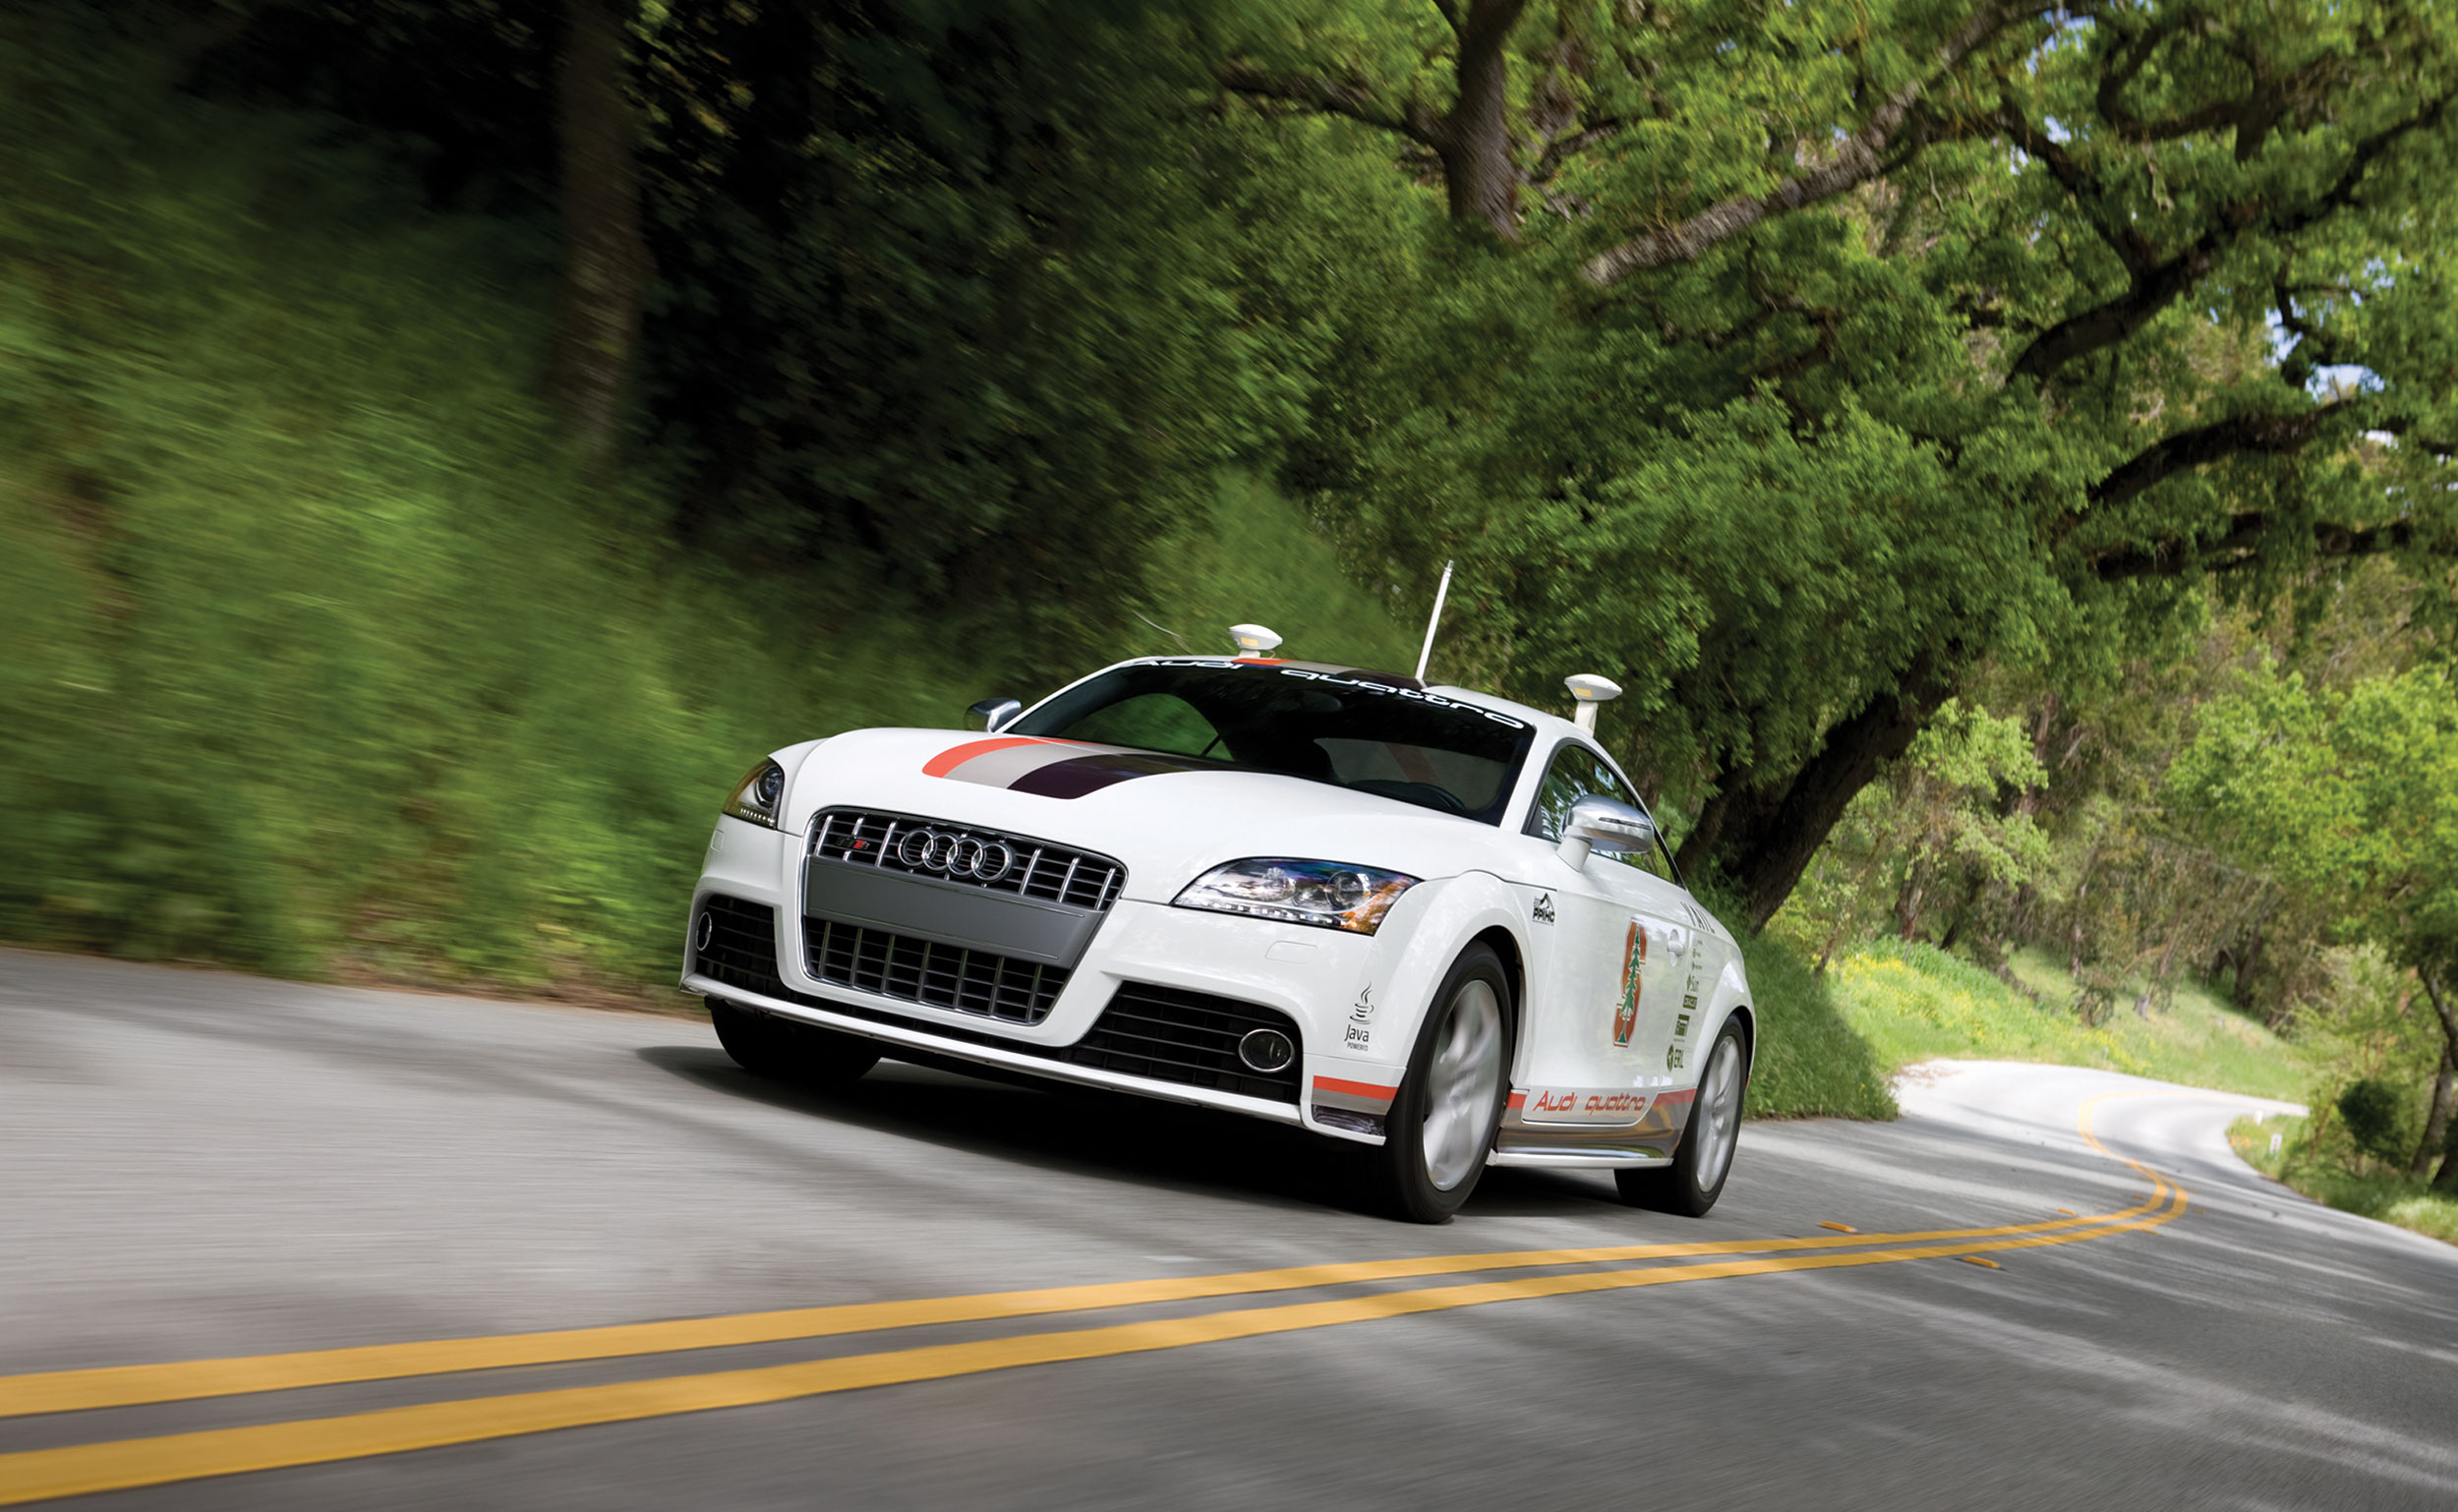 Audi Shows Assertive Push Towards Autonomous Driving